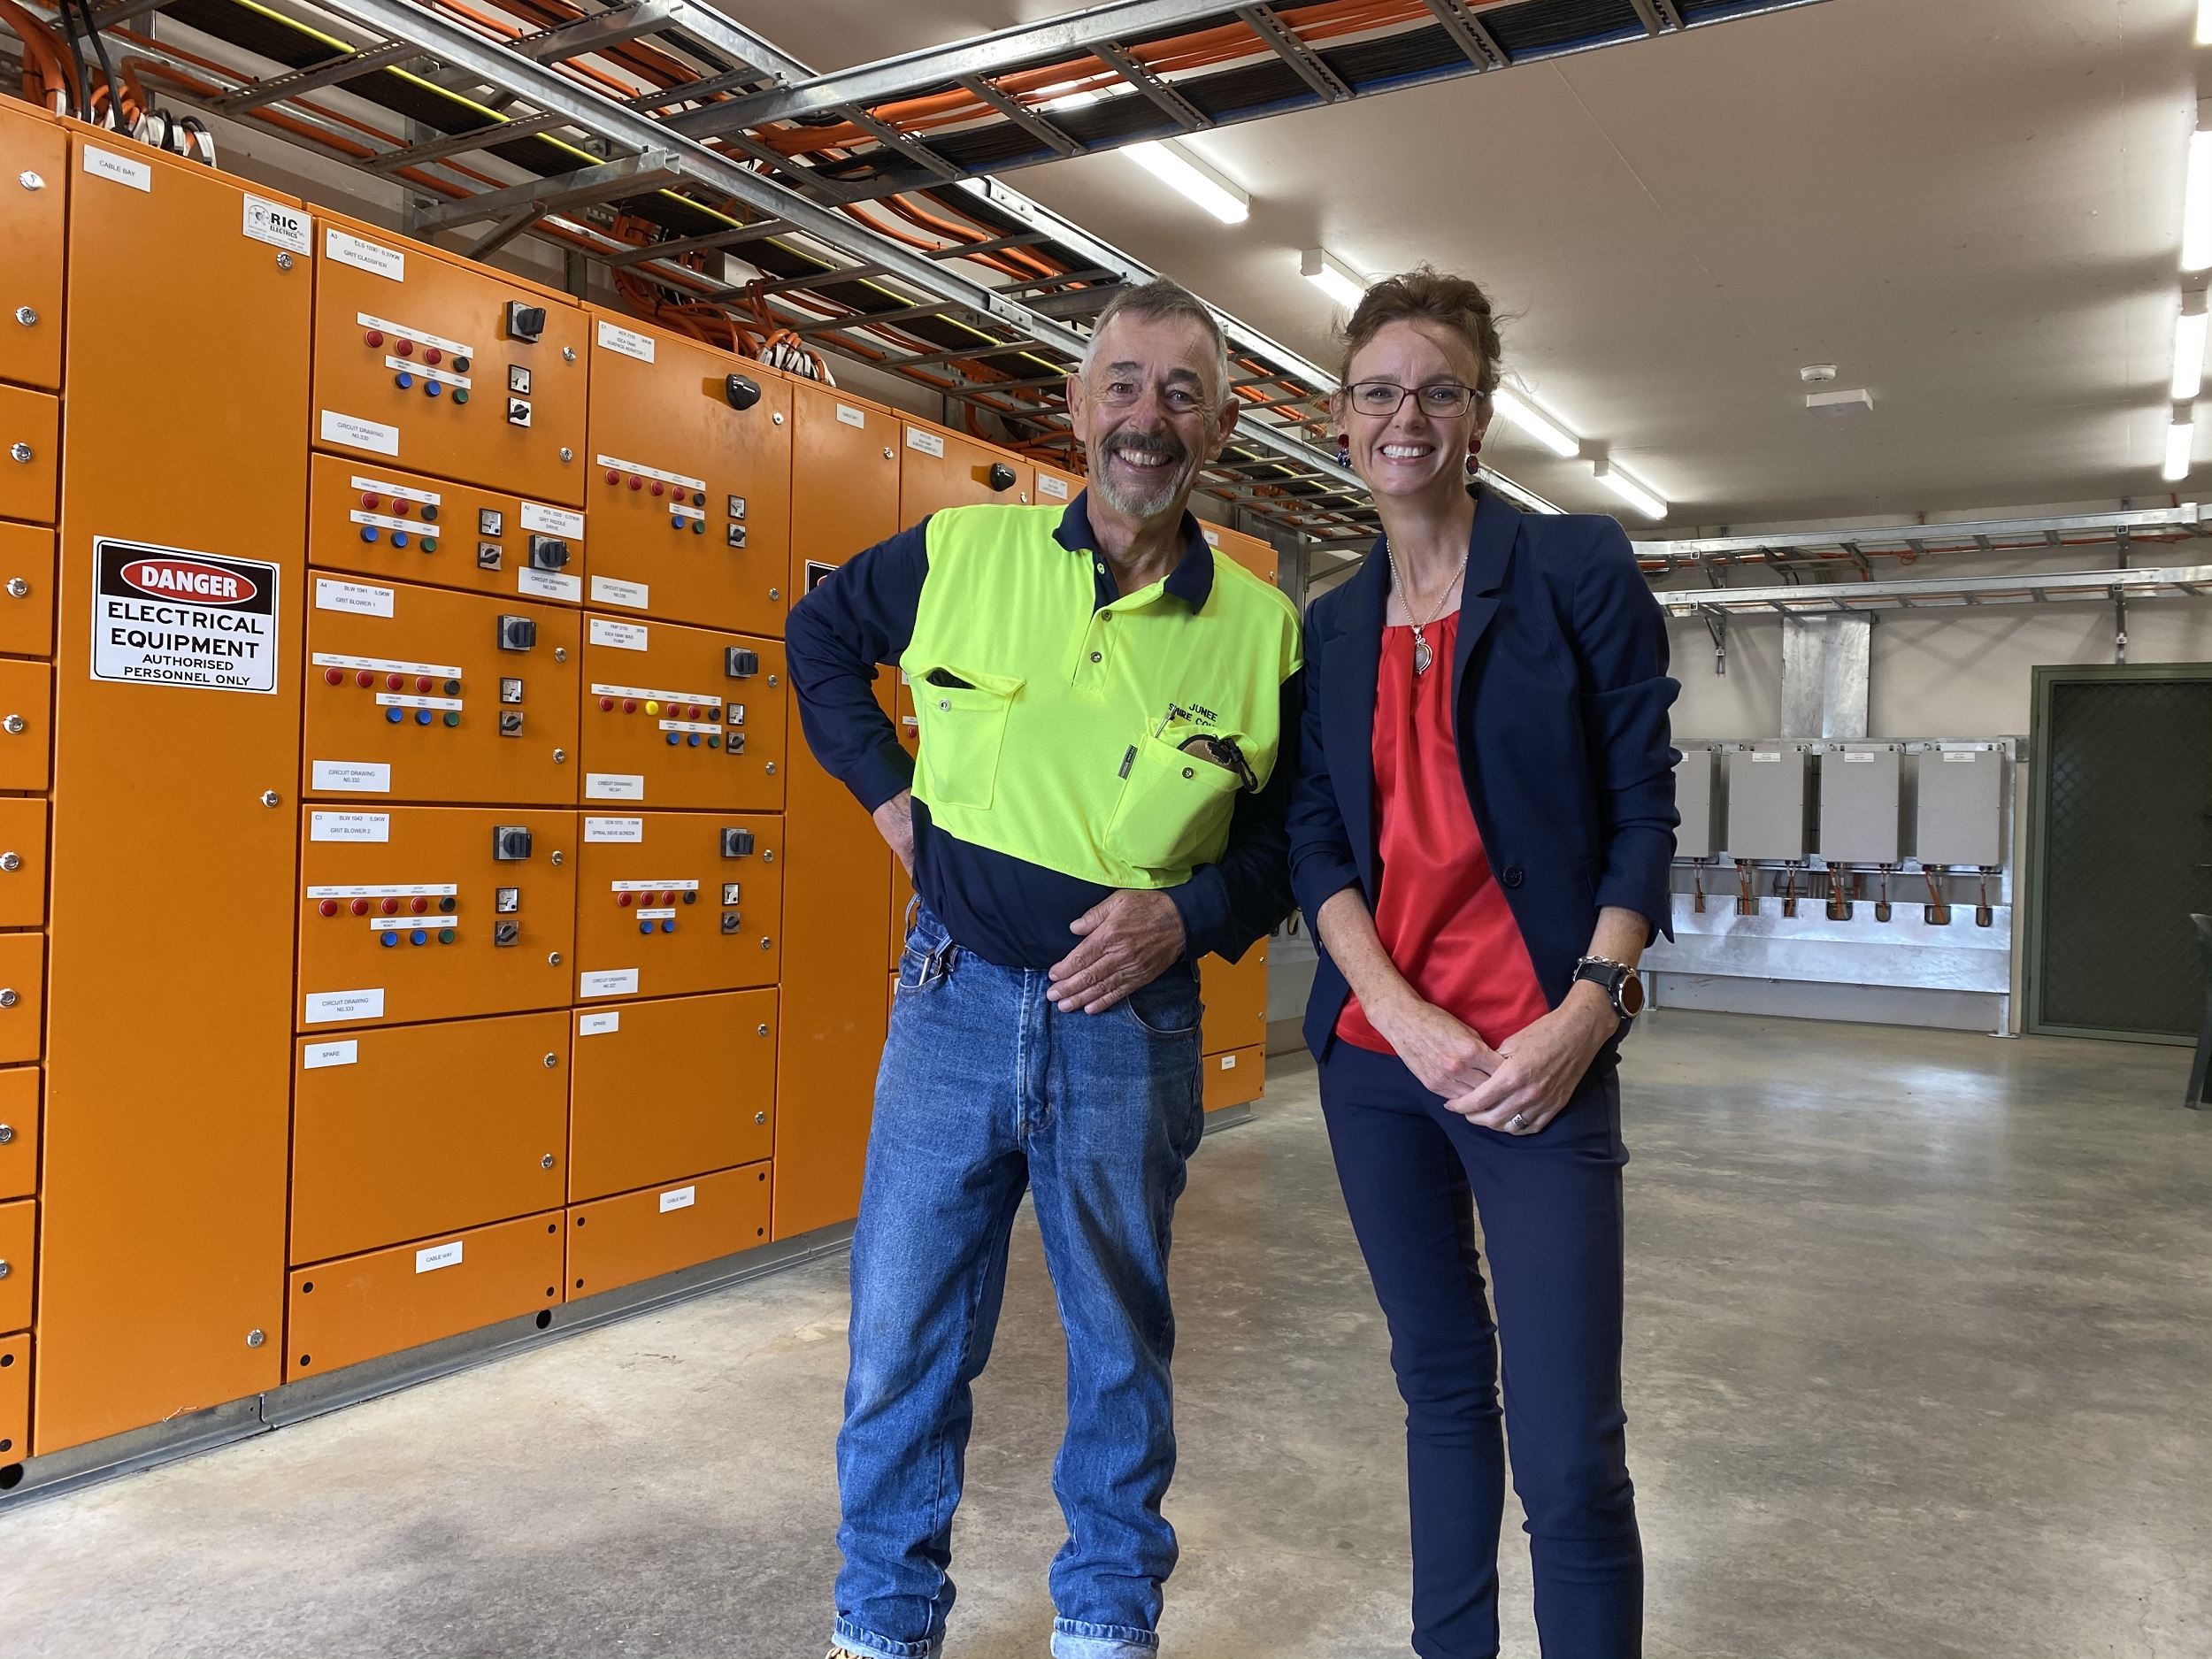 Michael Summerell and Steph Cooke stand in front of orange control panels and stand on a polished concrete floor.